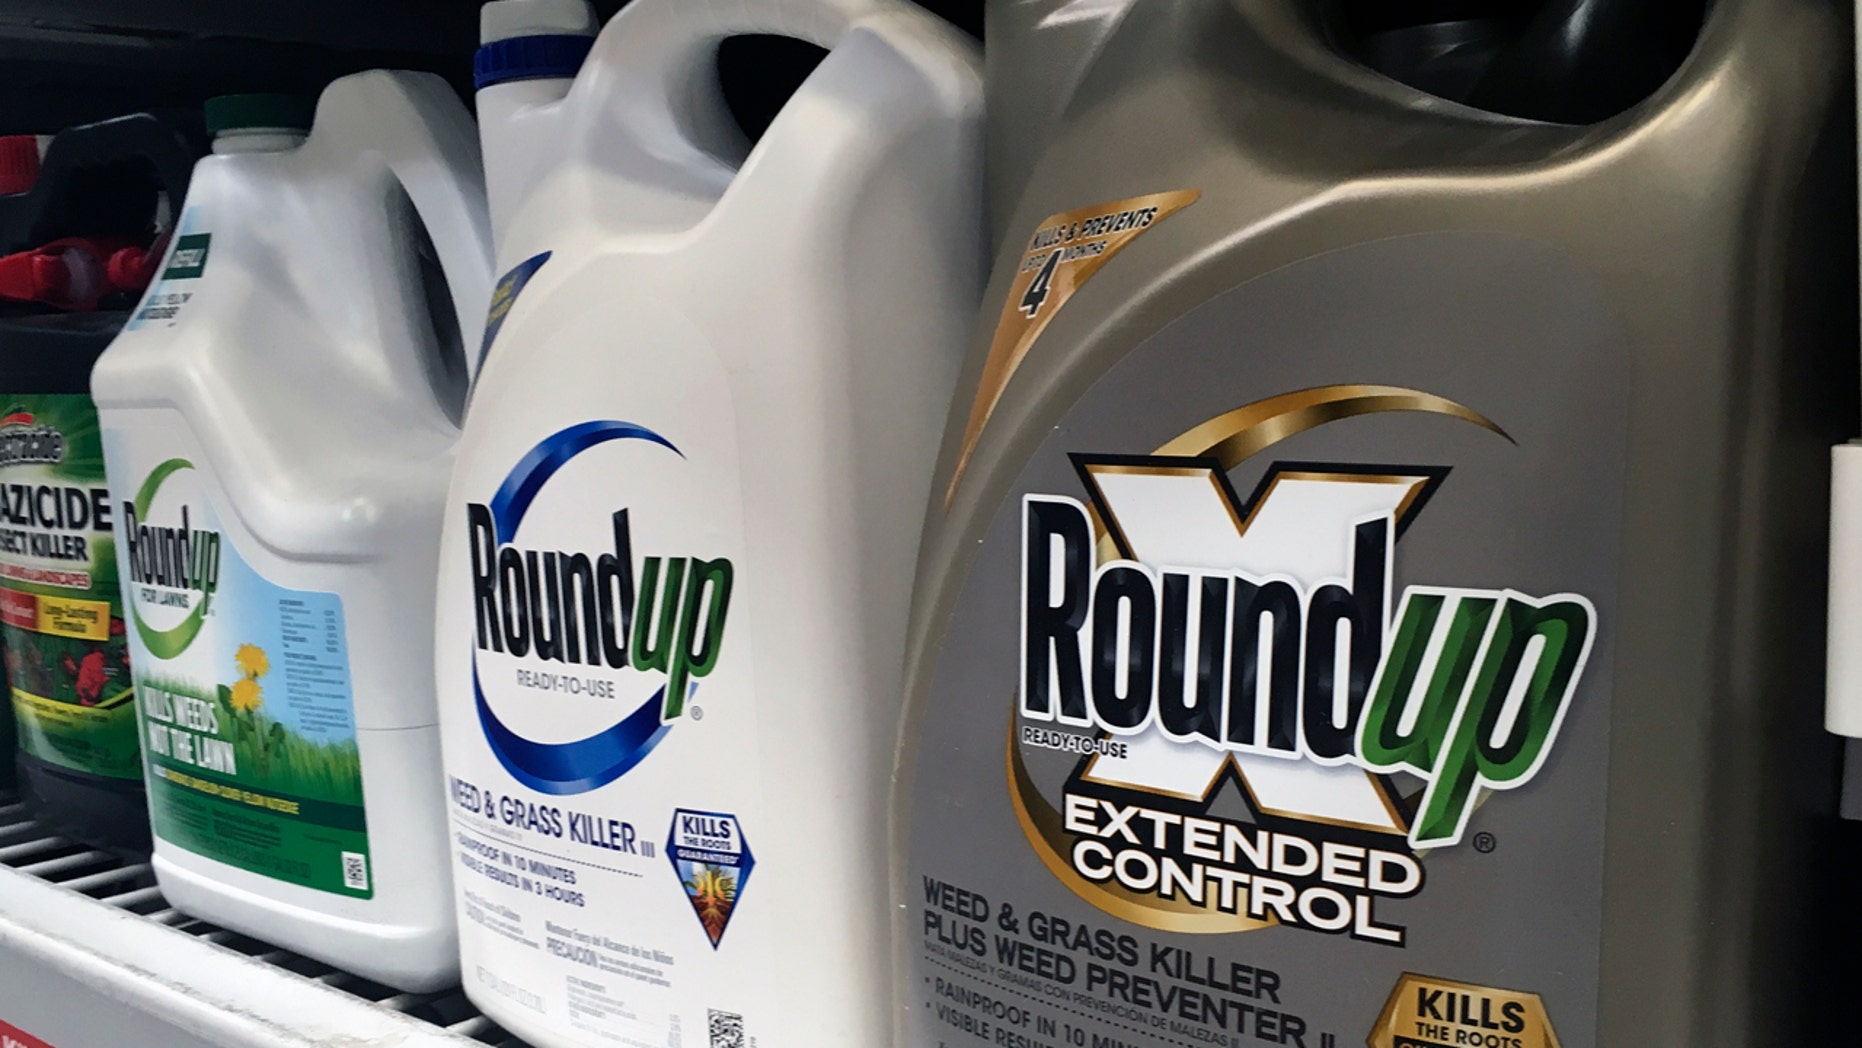 FILE - In this Sunday, Feb. 24, 2019 record photo, containers of Roundup are displayed on a store shelf in San Francisco. (AP Photo/Haven Daley, File)